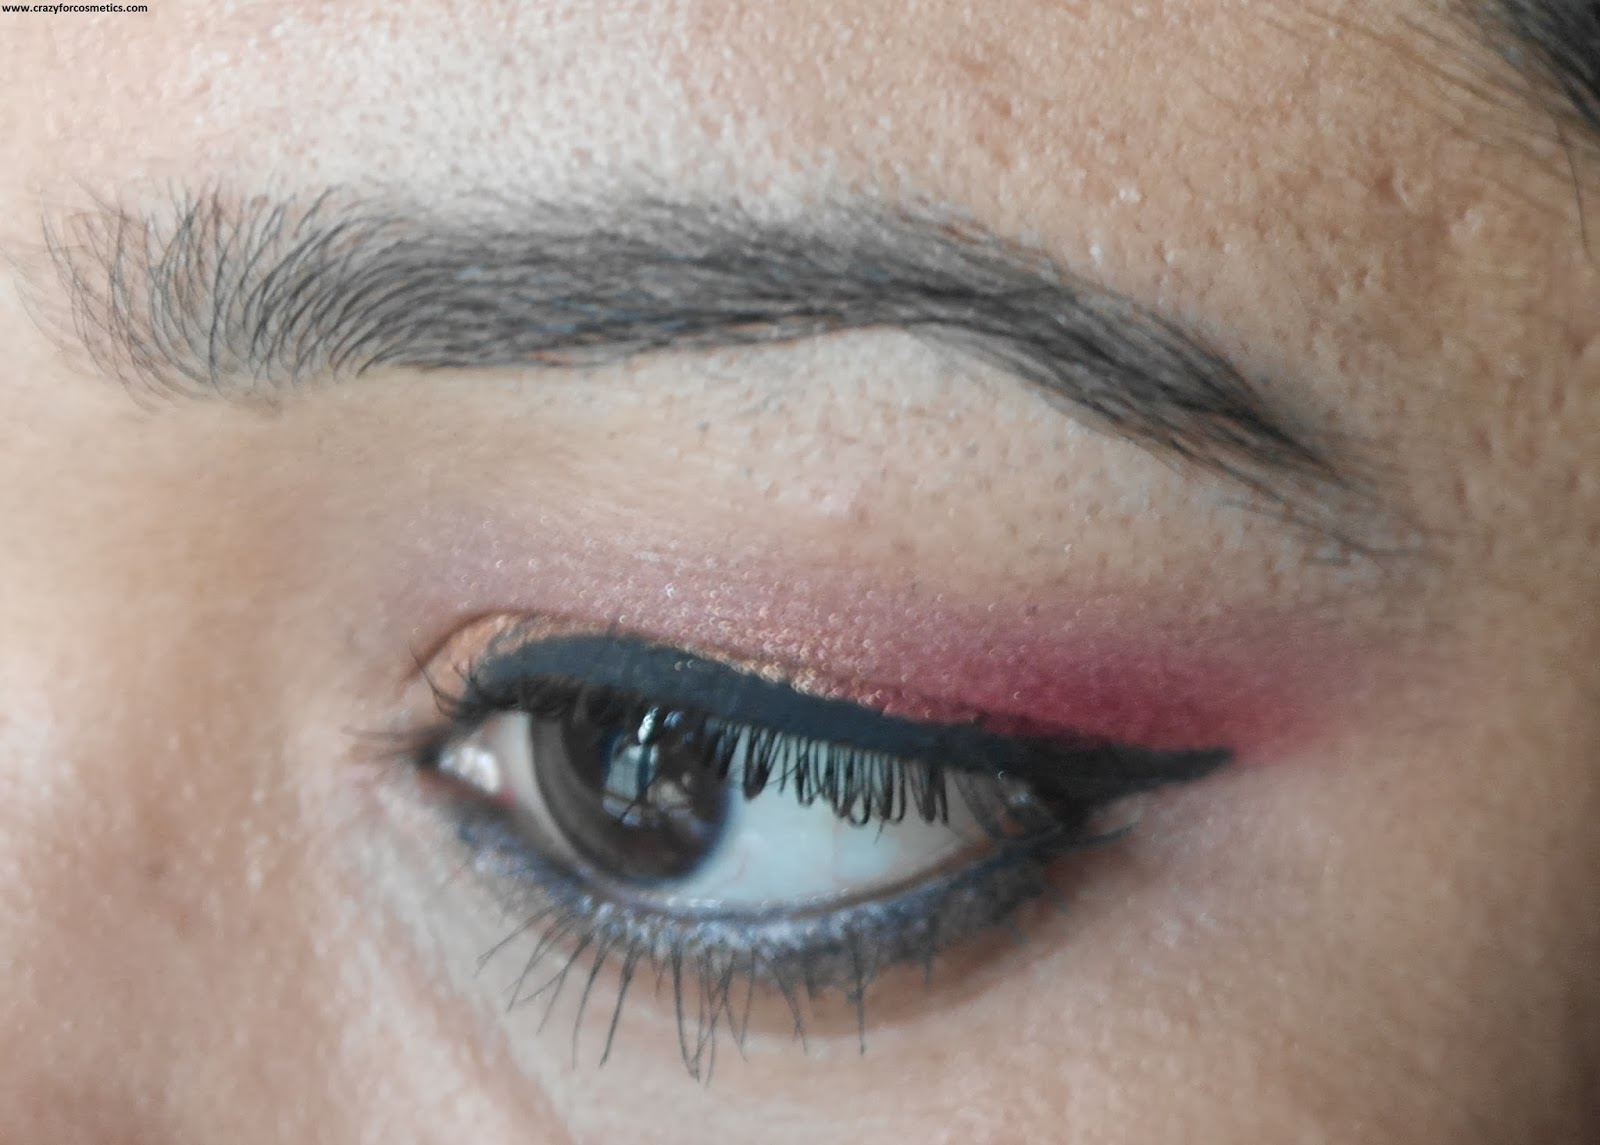 NYX single eyeshadow 109 sunrise swatches on eyes eyemakeup